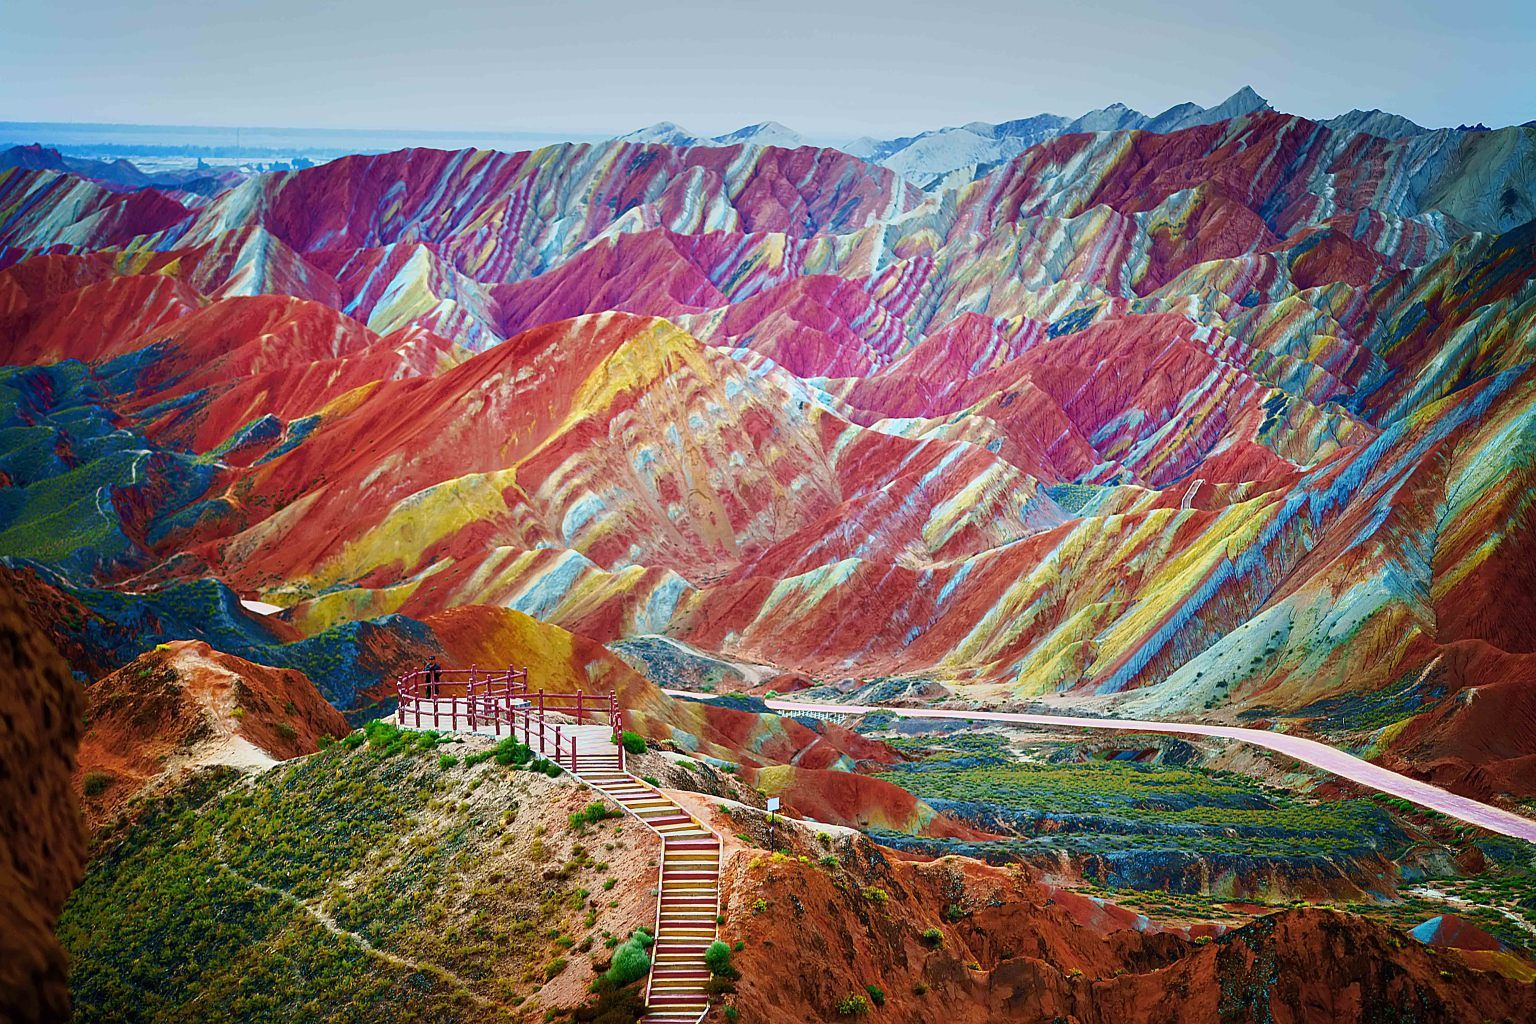 15 Shockingly Beautiful Places You Won't Believe Occurred Naturally